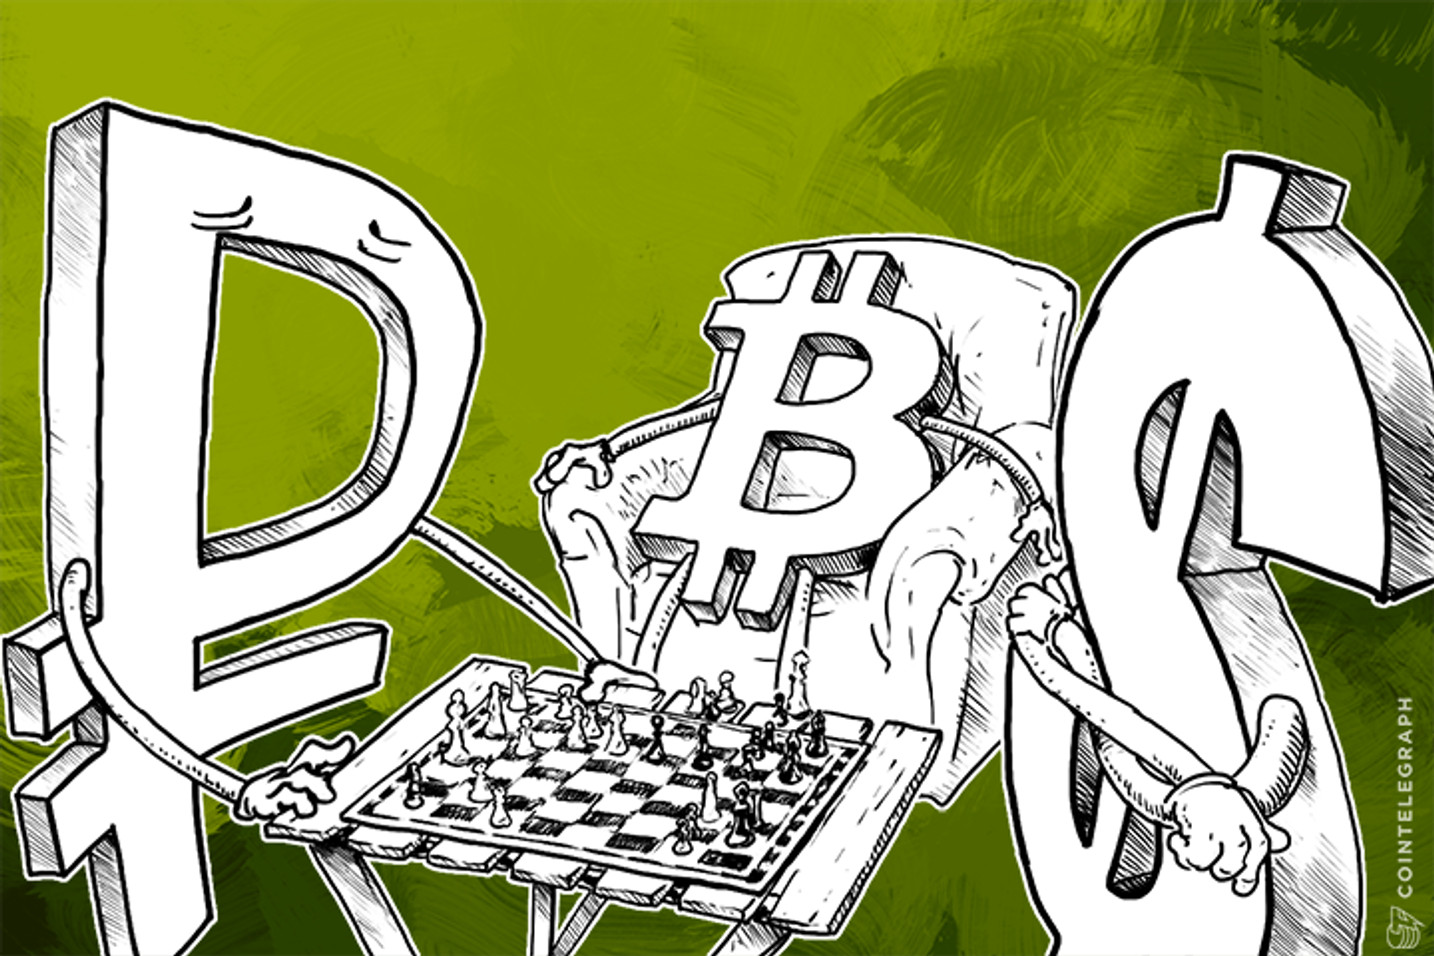 Russian Ruble Woes 'Not Impacting' Bitcoin Price amid 250% Trading Increase